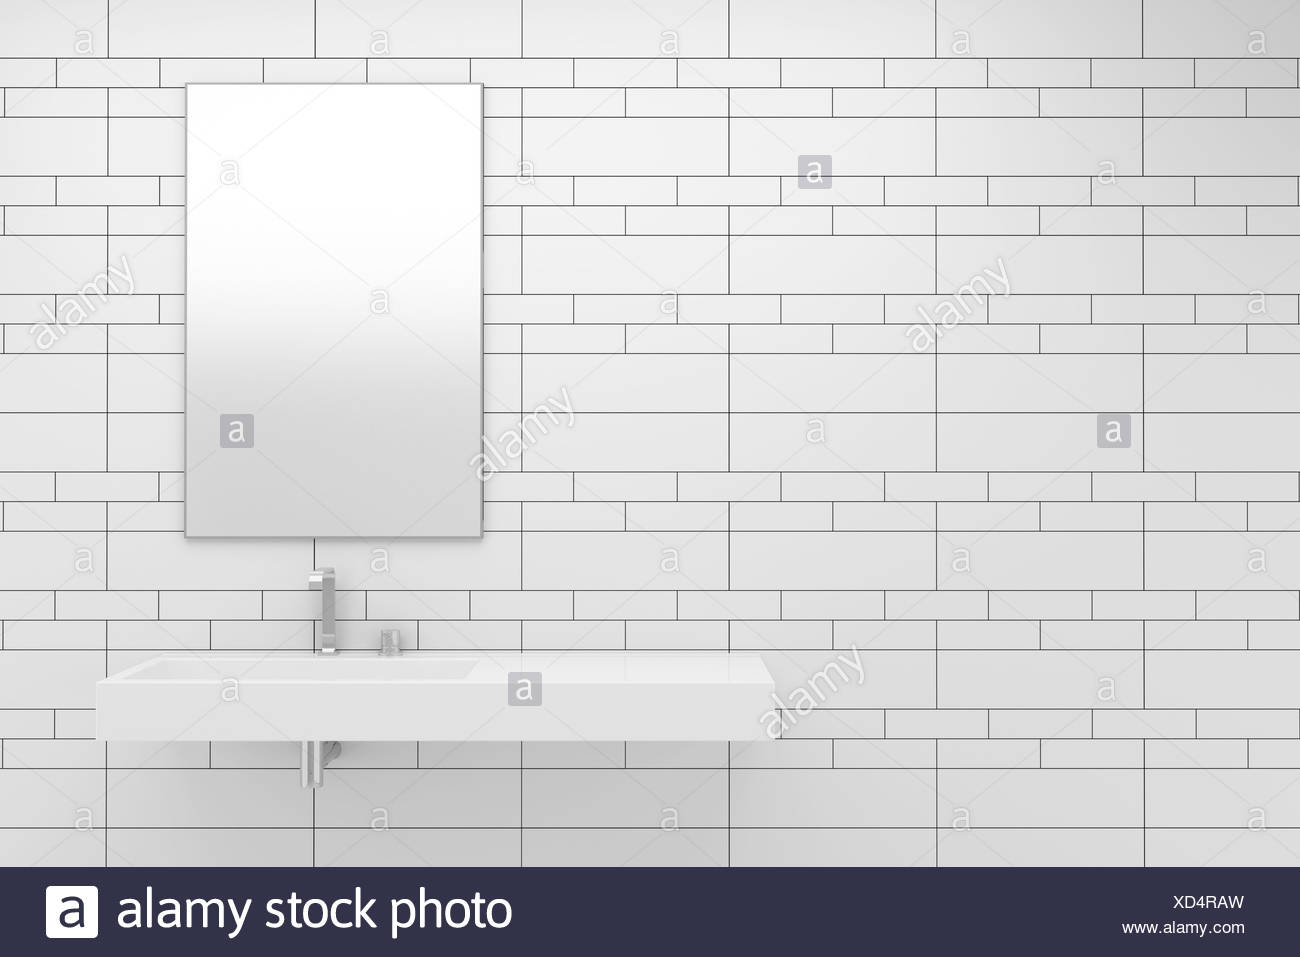 Tiles Bathroom Black and White Stock Photos & Images - Alamy